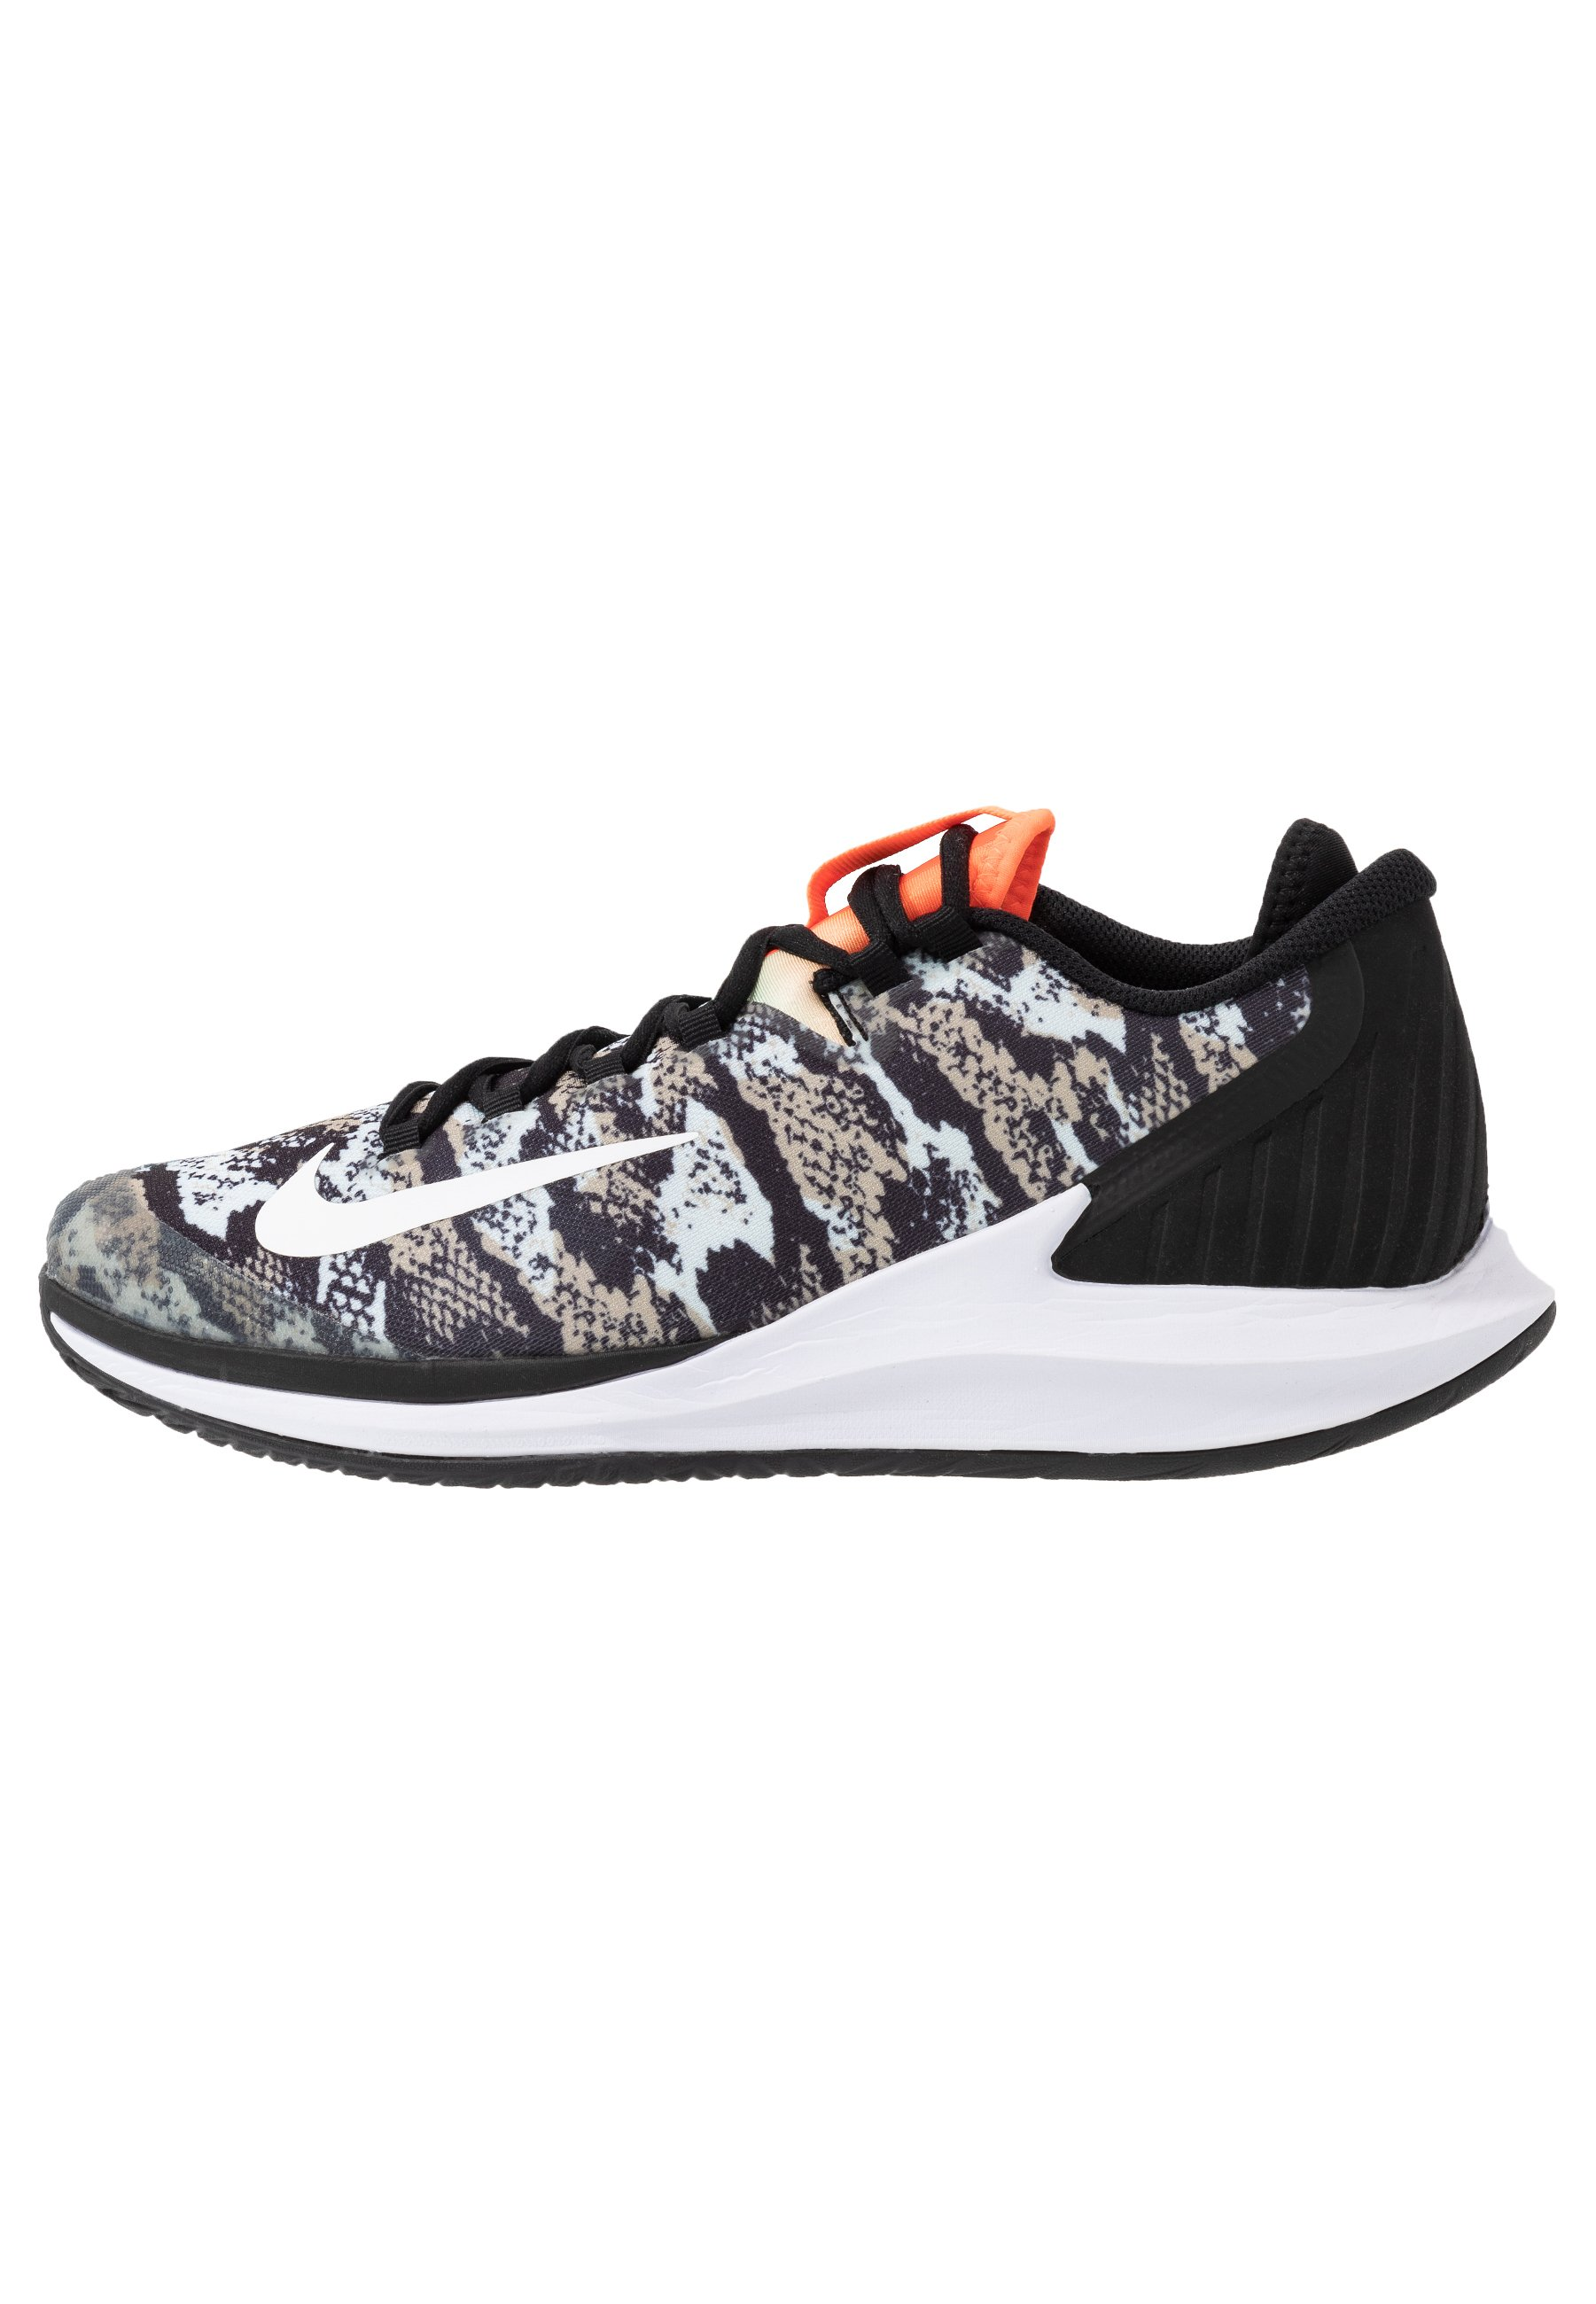 Nike Performance Court Air Zoom - Scarpe Da Tennis Per Tutte Le Superfici Black/metallic Gold/white 1mrEG